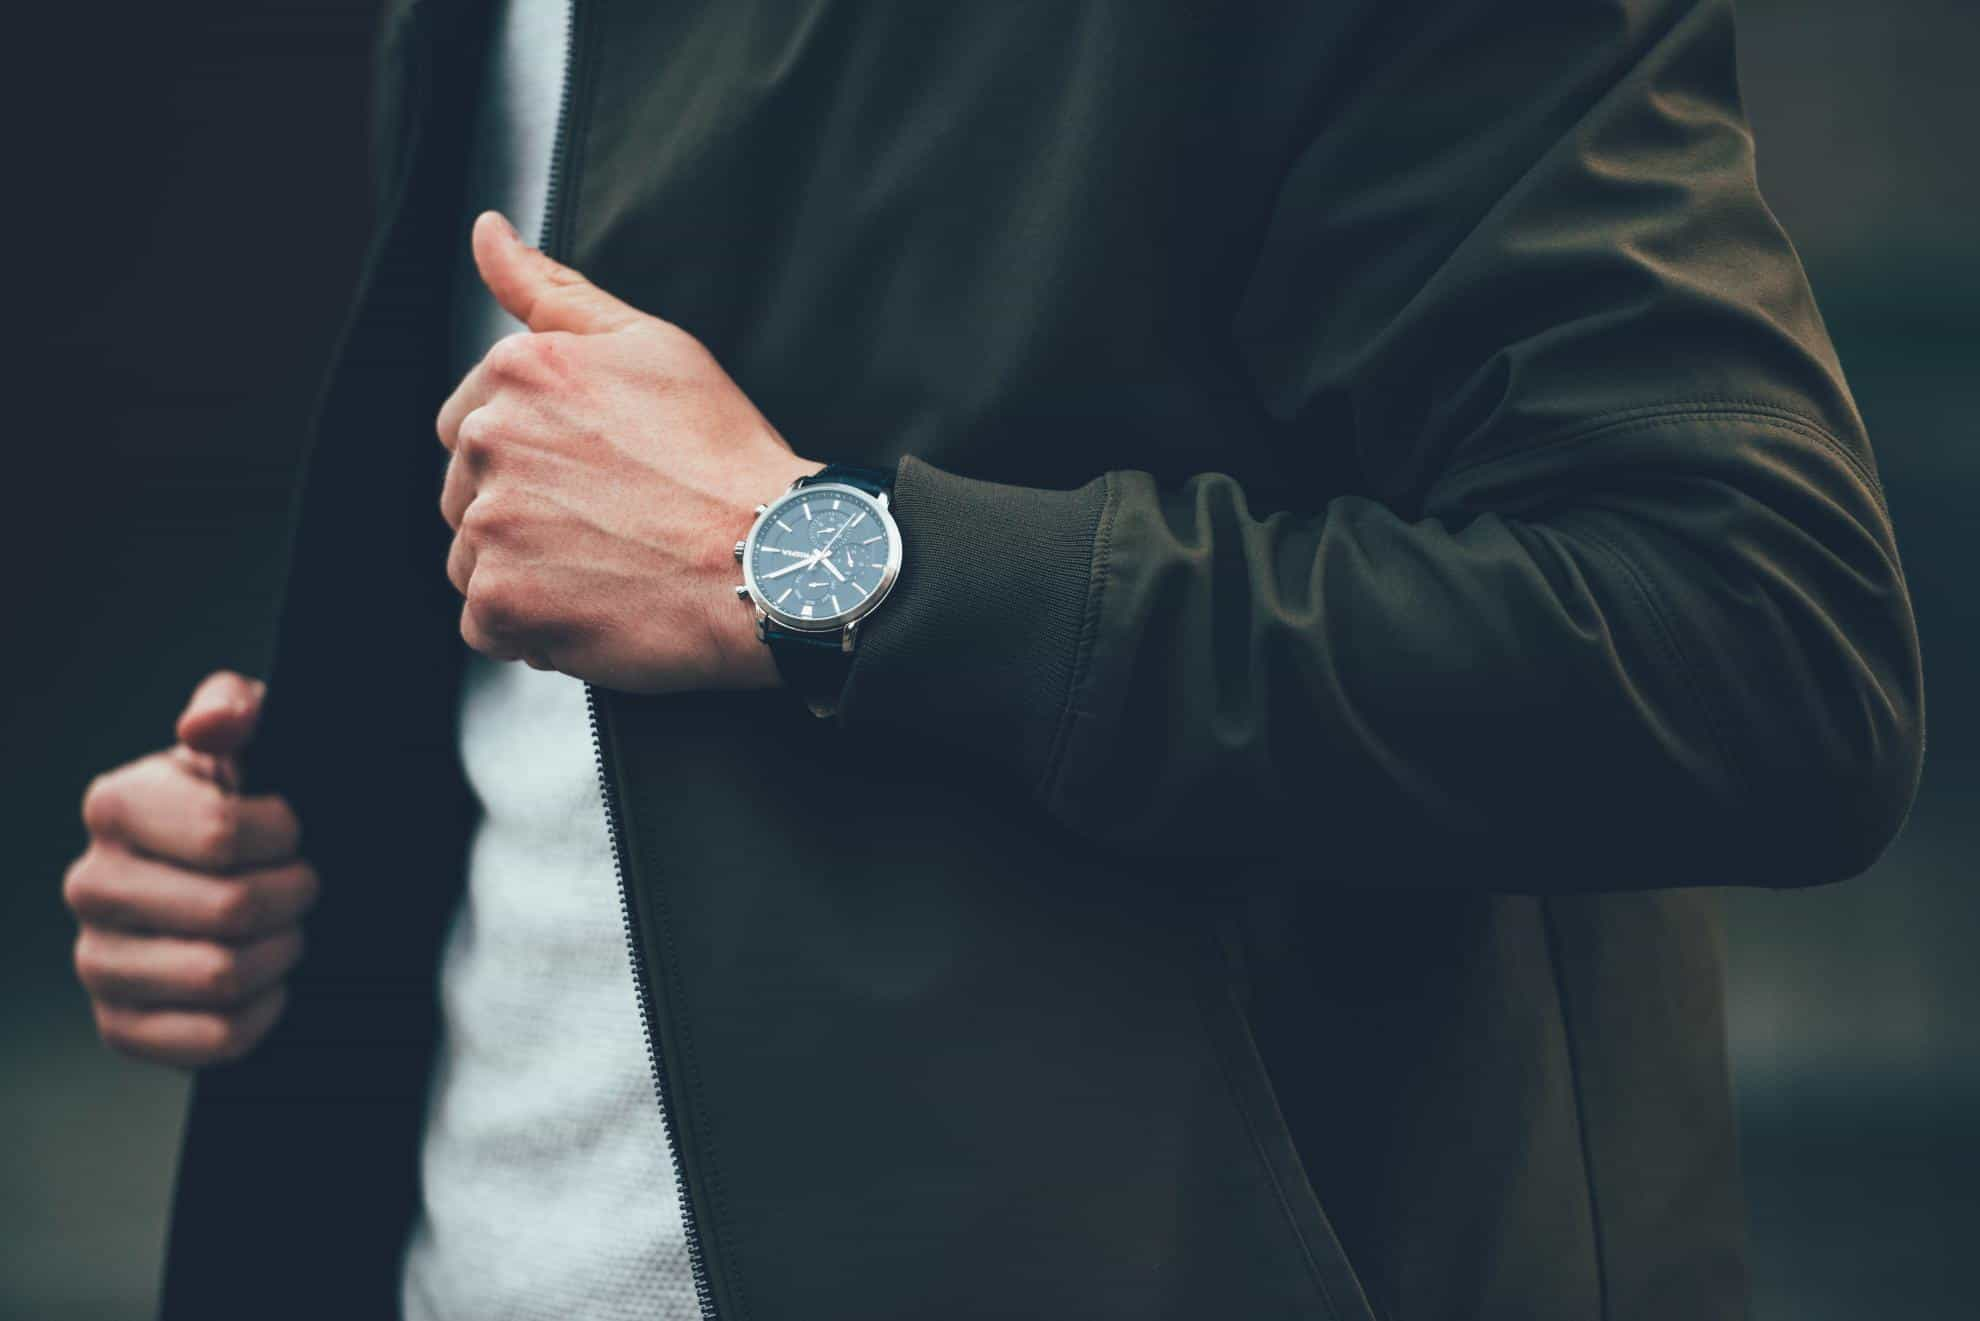 7 Things Every Man Should Have in His Wardrobe